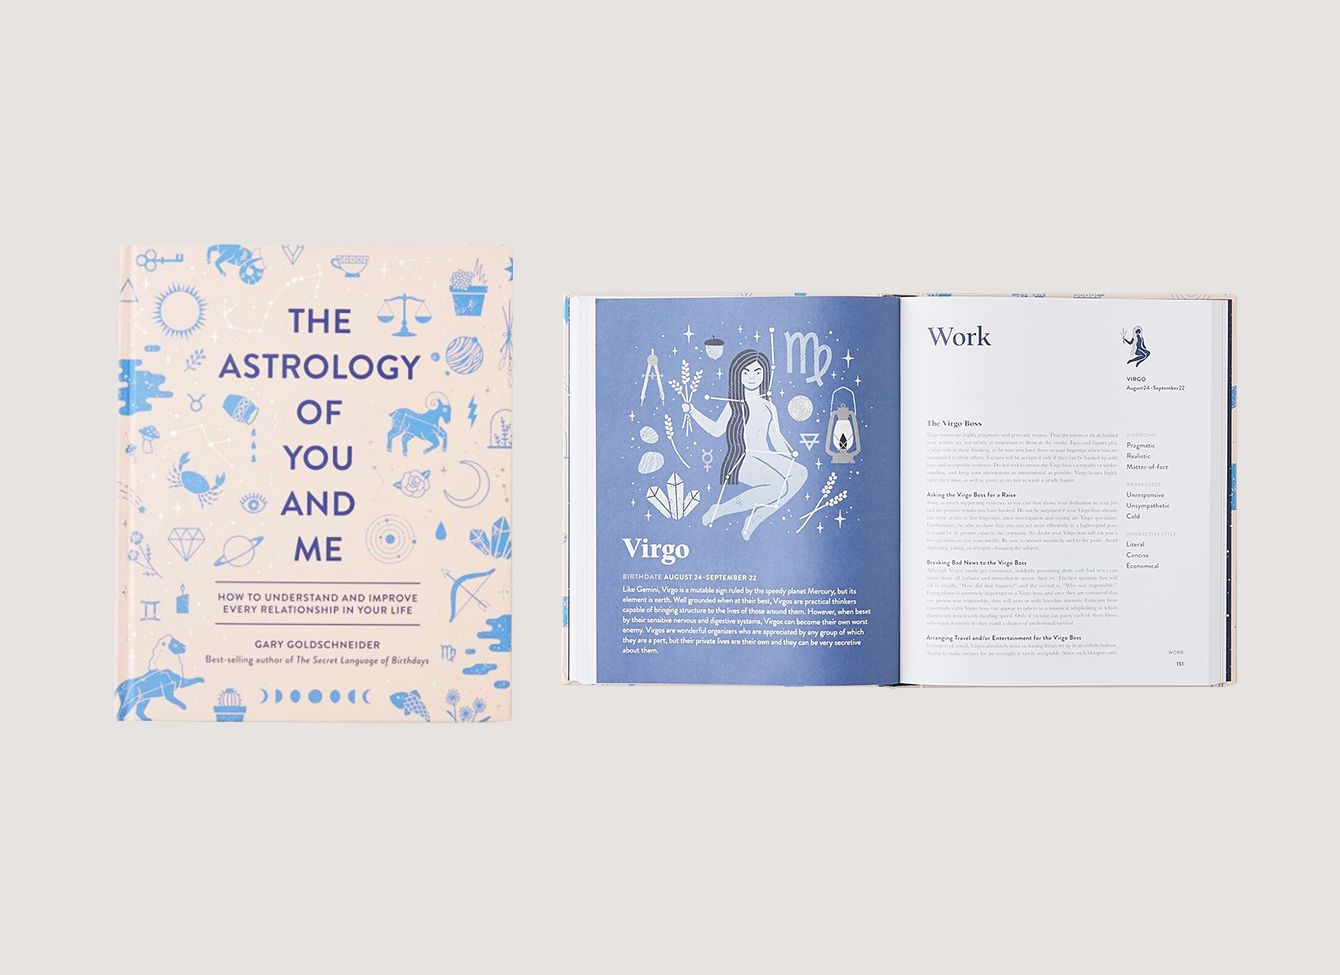 <em>The Astrology of You and Me: How to Understand + Improve Every Relationship</em>